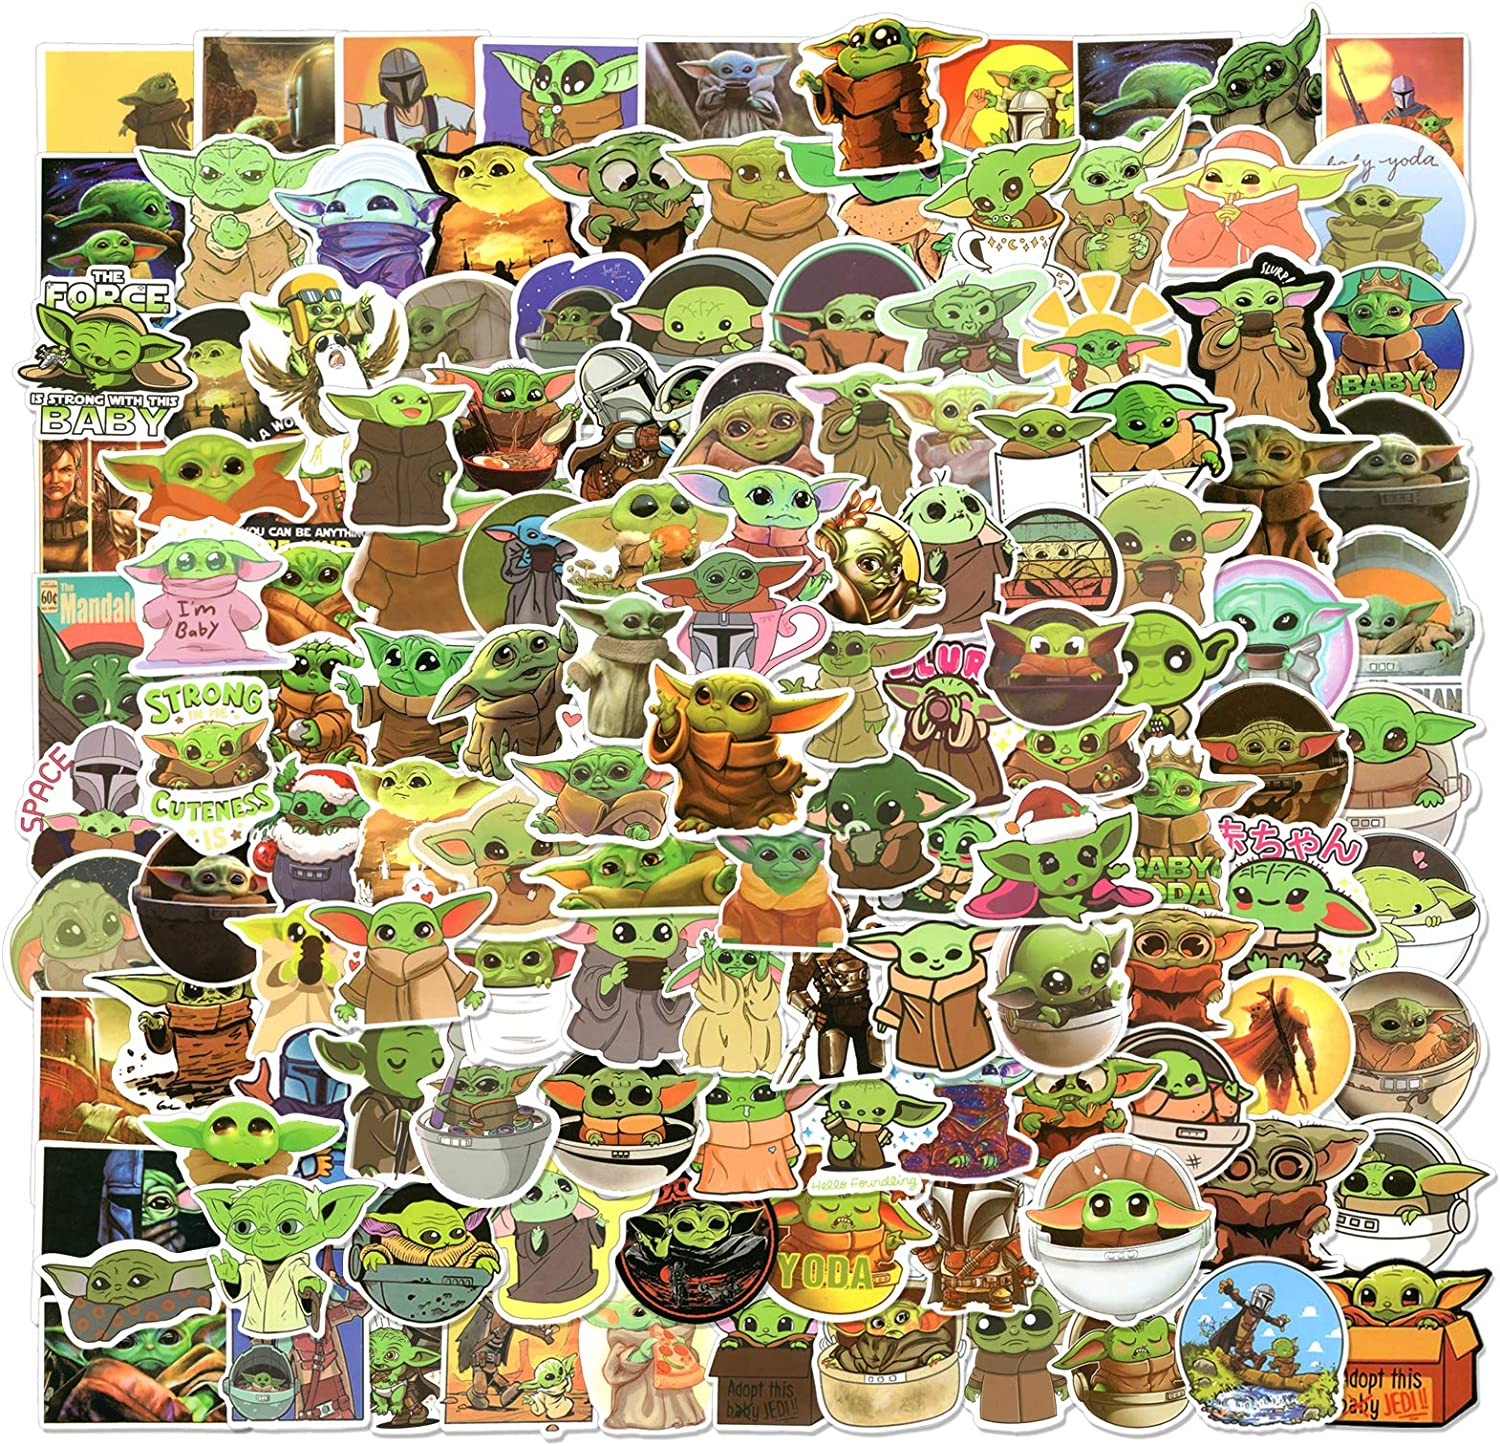 222pcs Baby Yoda Stickers, Mandalorian Star Wars Decals for Laptop, Vinyl Waterproof Stickers for Water Bottle, Cool Cute Cartoon Stickers for Kids, Teens, Adults